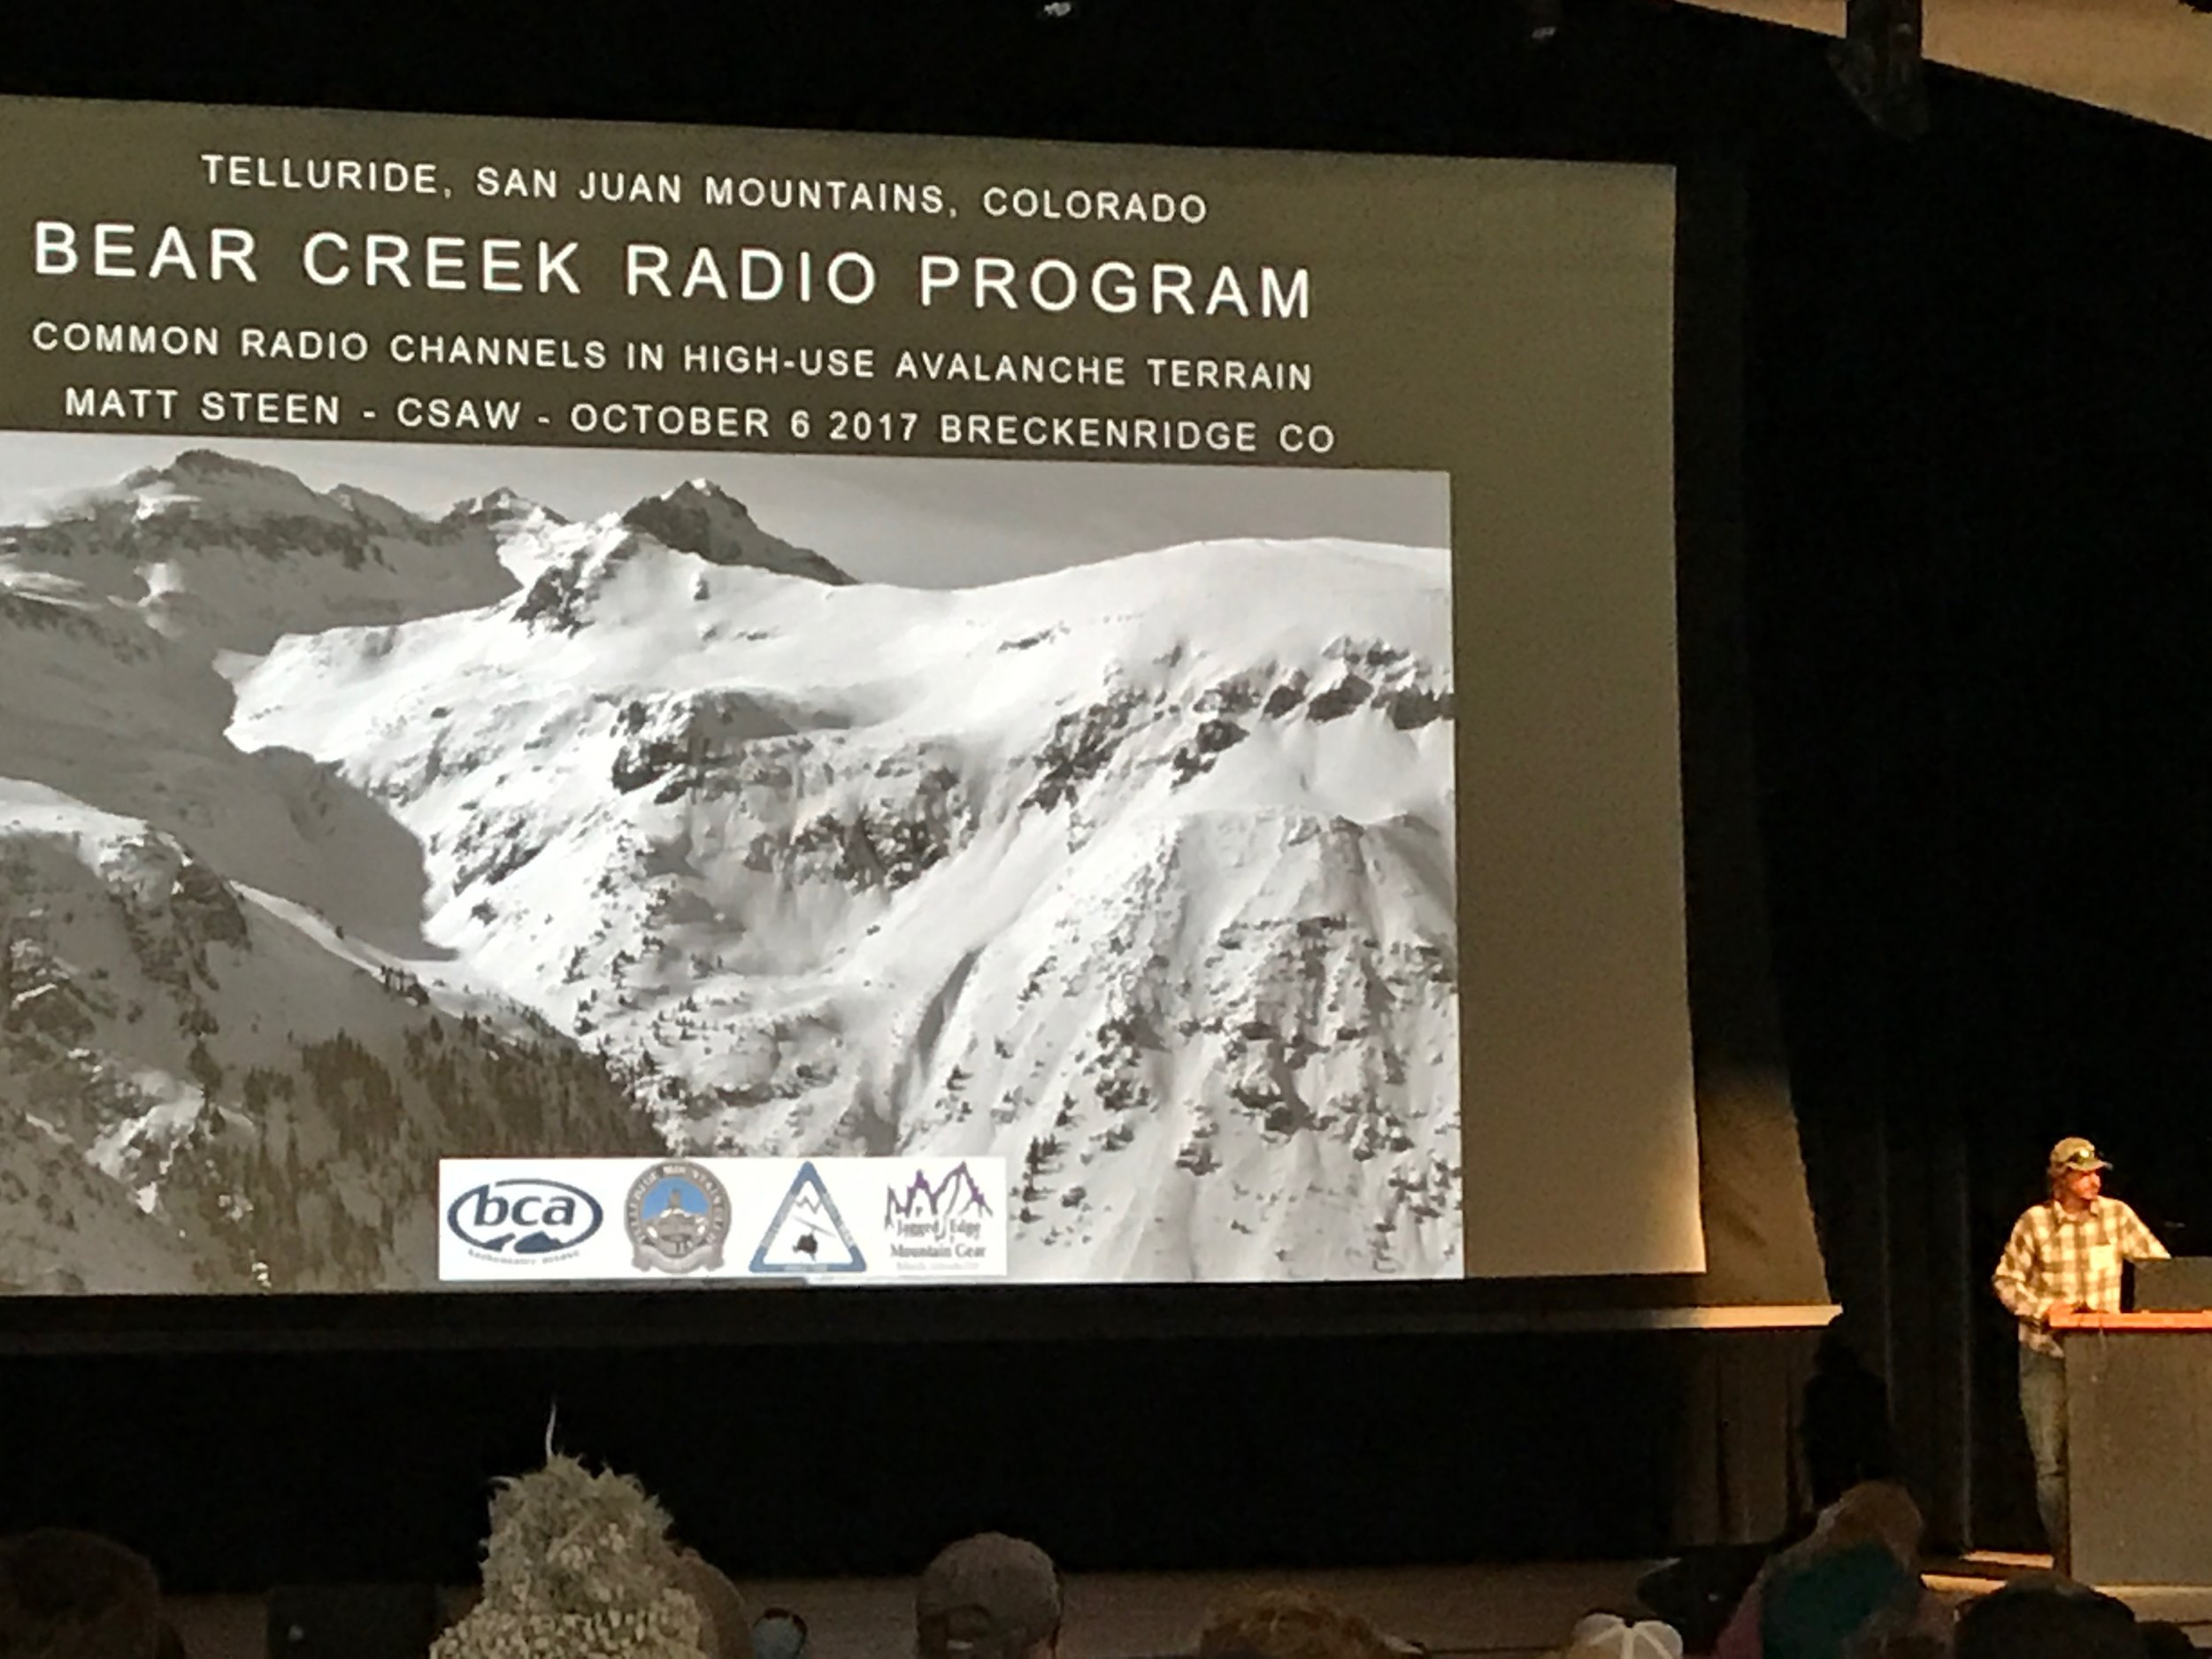 Matt covering how an innovative program to improve backcountry communication has worked for the Telluride area.